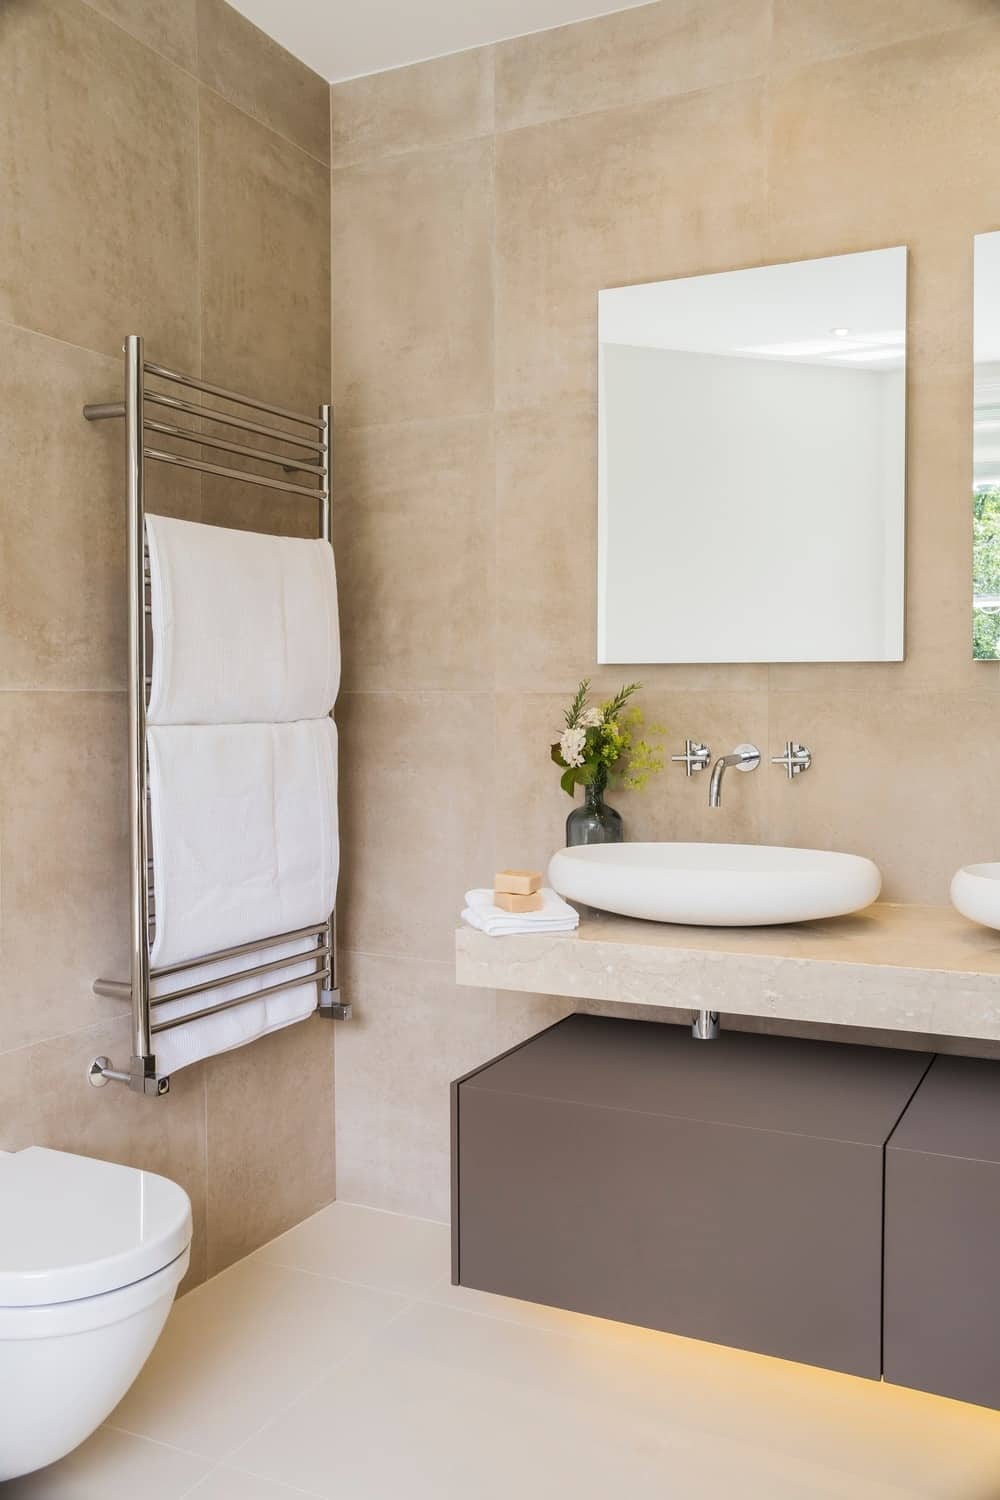 The bathroom features a double vessel sink with tiles walls and floors. Photo Credit: Rick Mccullagh